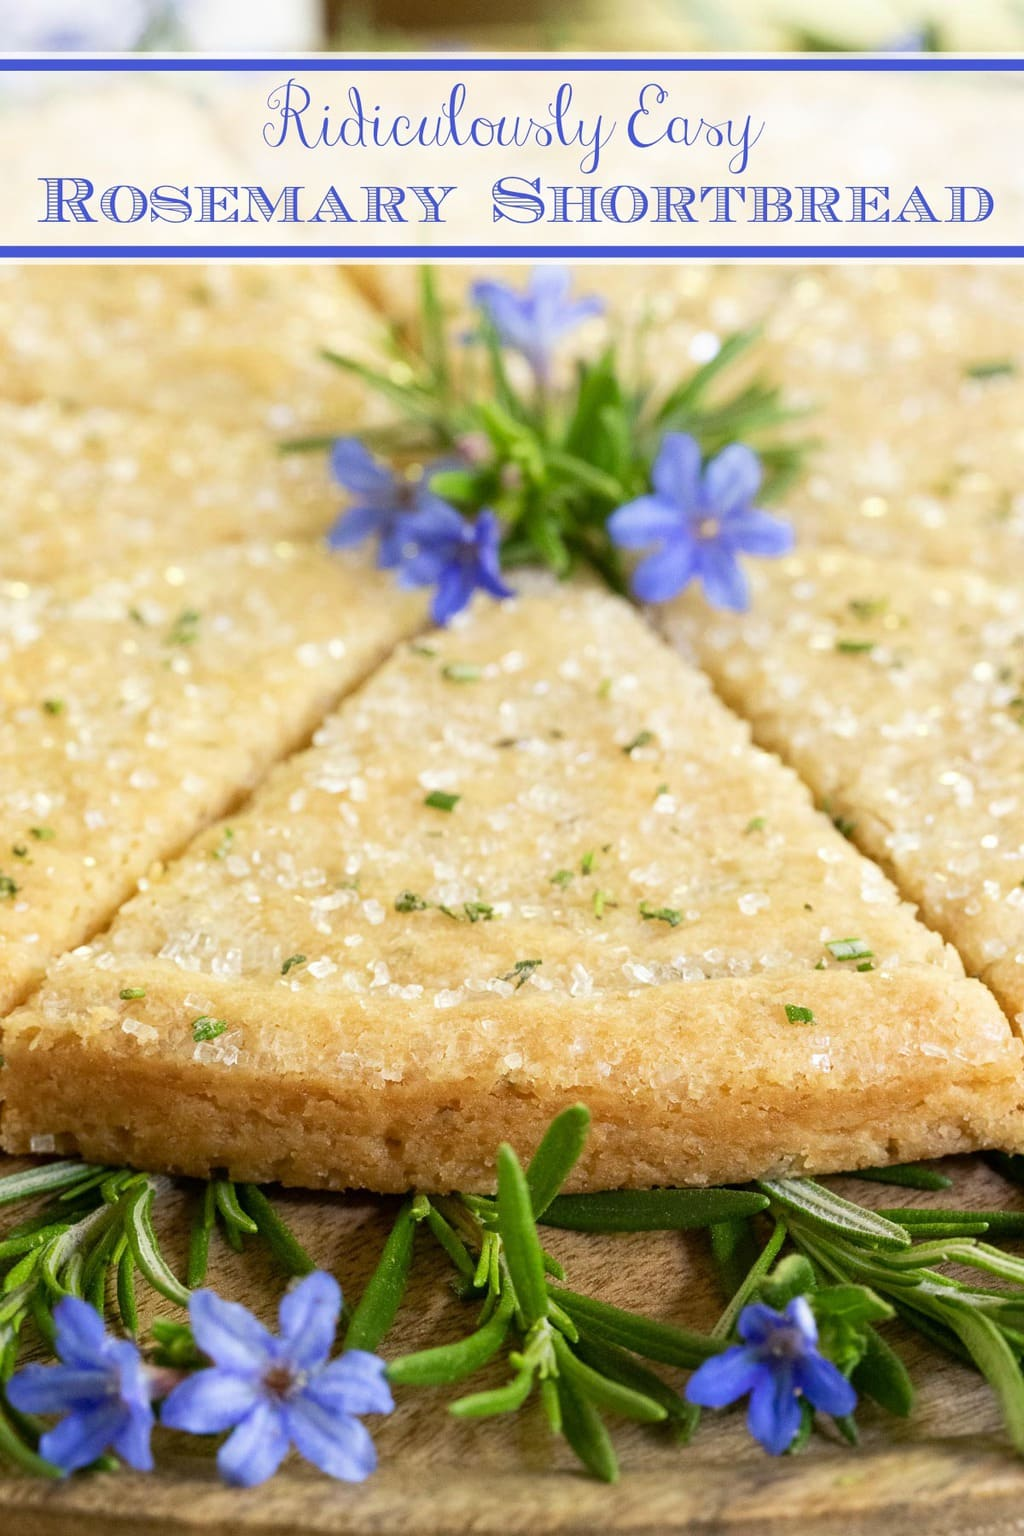 Ridiculously Easy Rosemary Shortbread